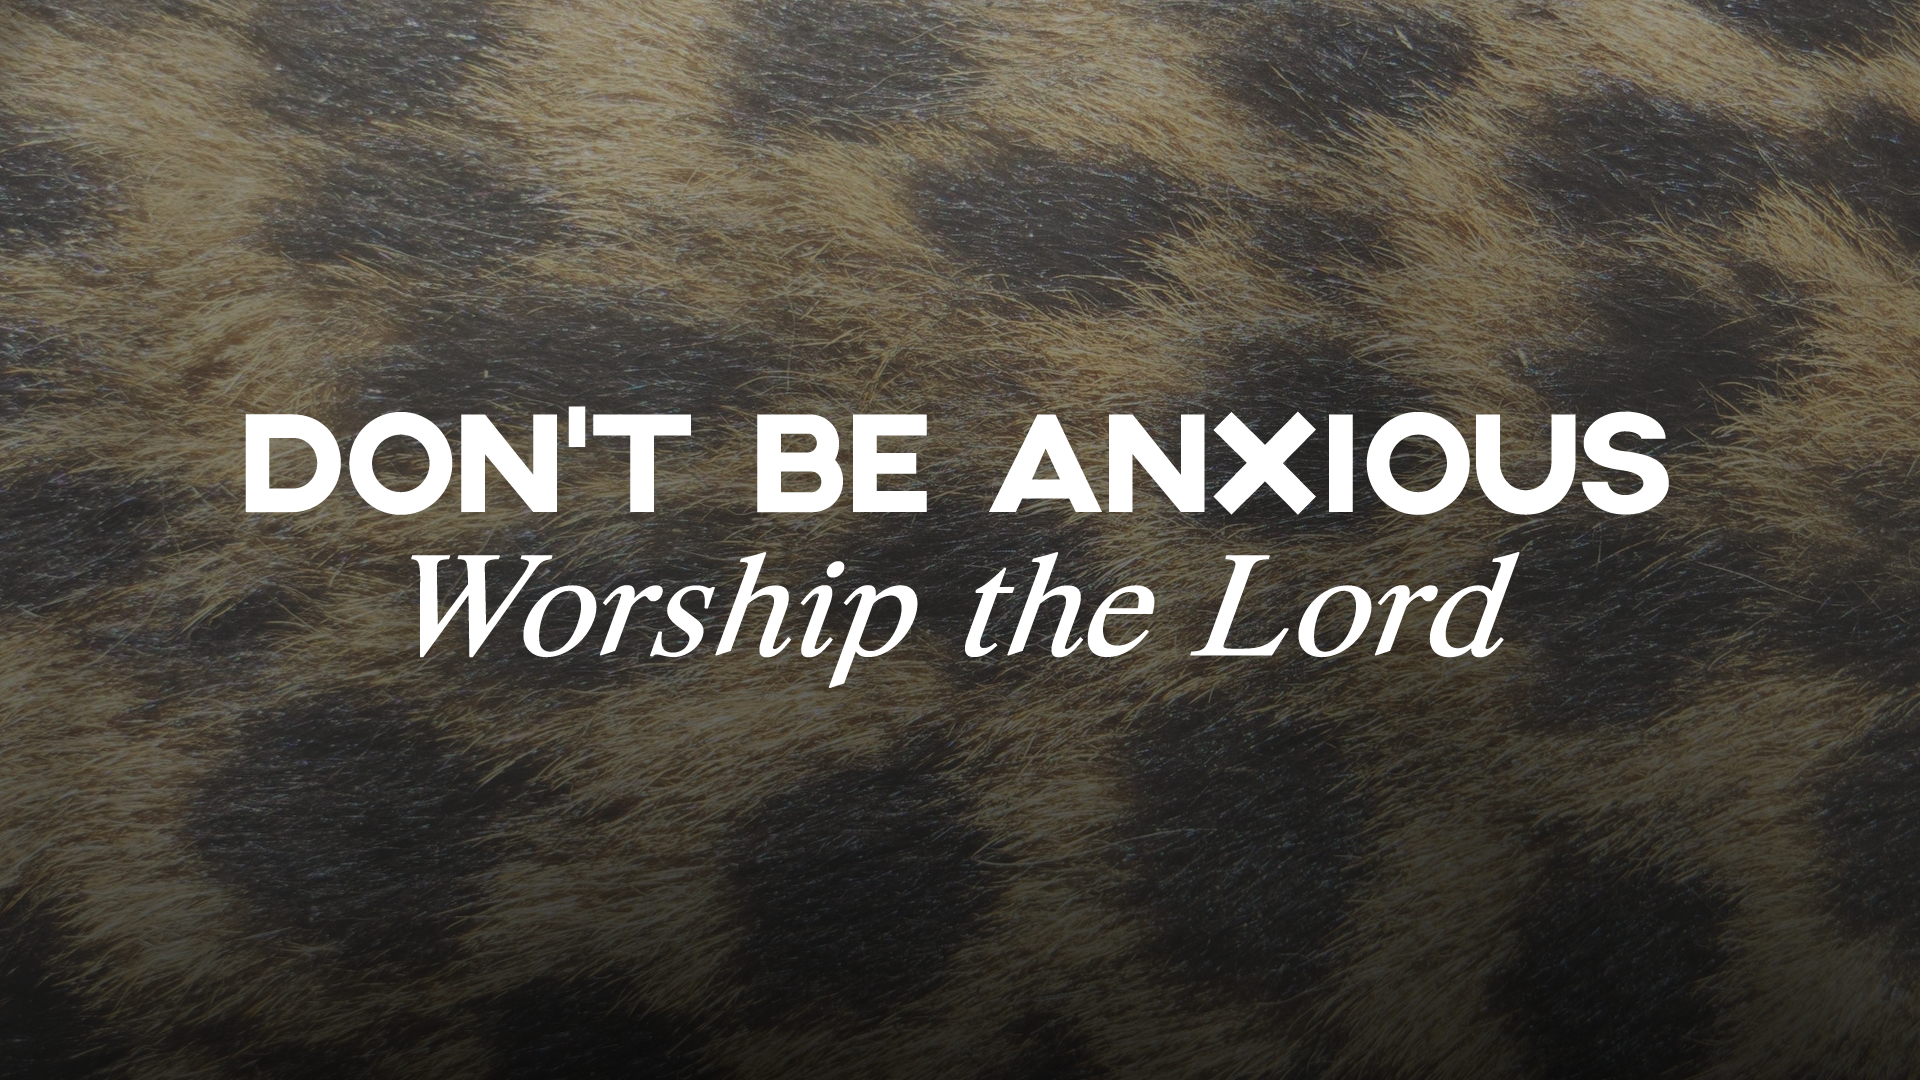 Dont Be Anxious - Worship the Lord.jpg